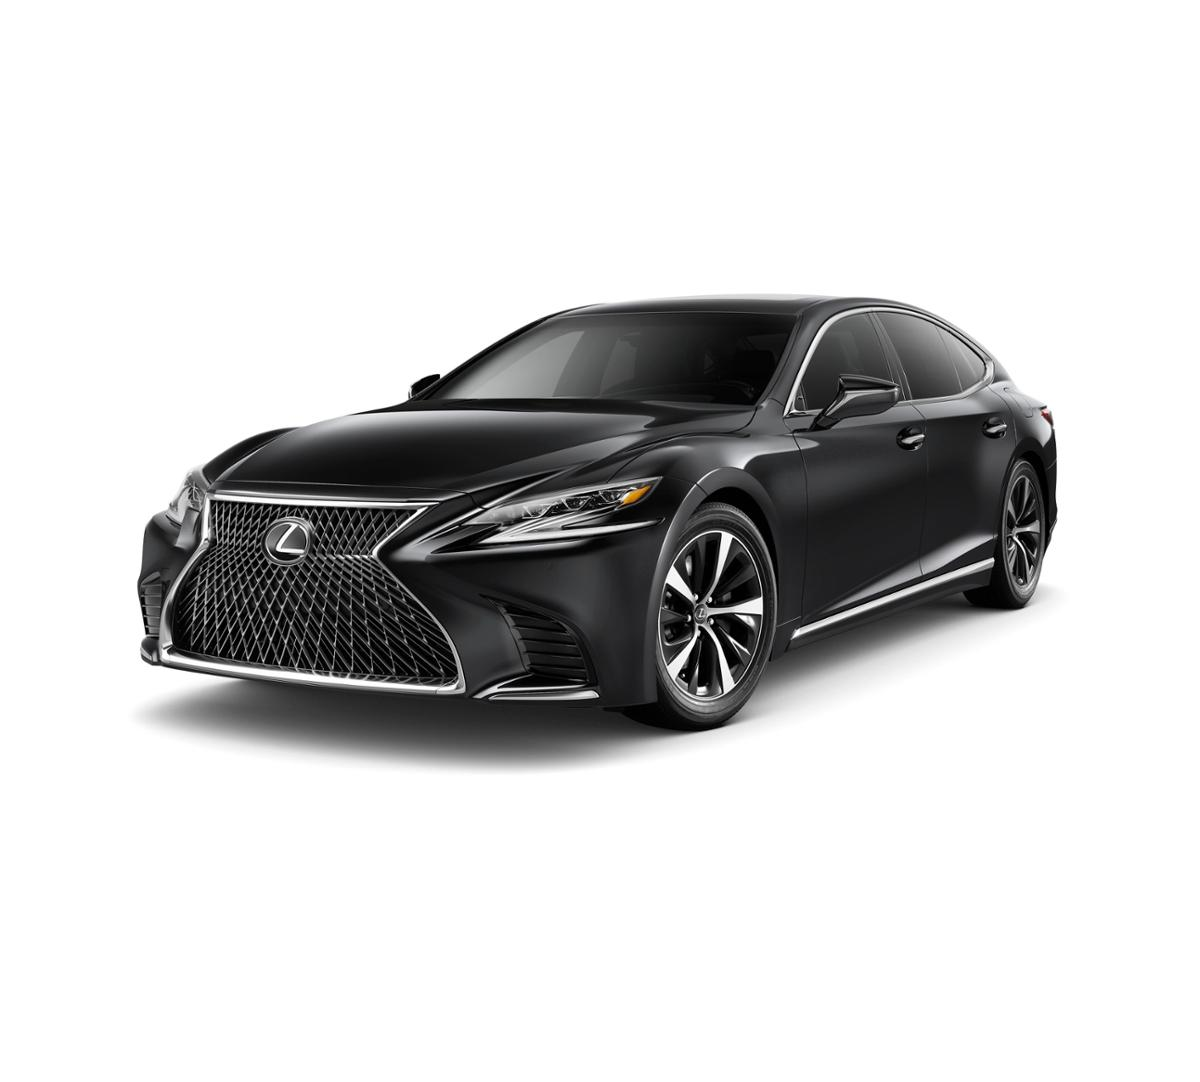 2019 Lexus LS 500 Vehicle Photo in Dallas, TX 75209